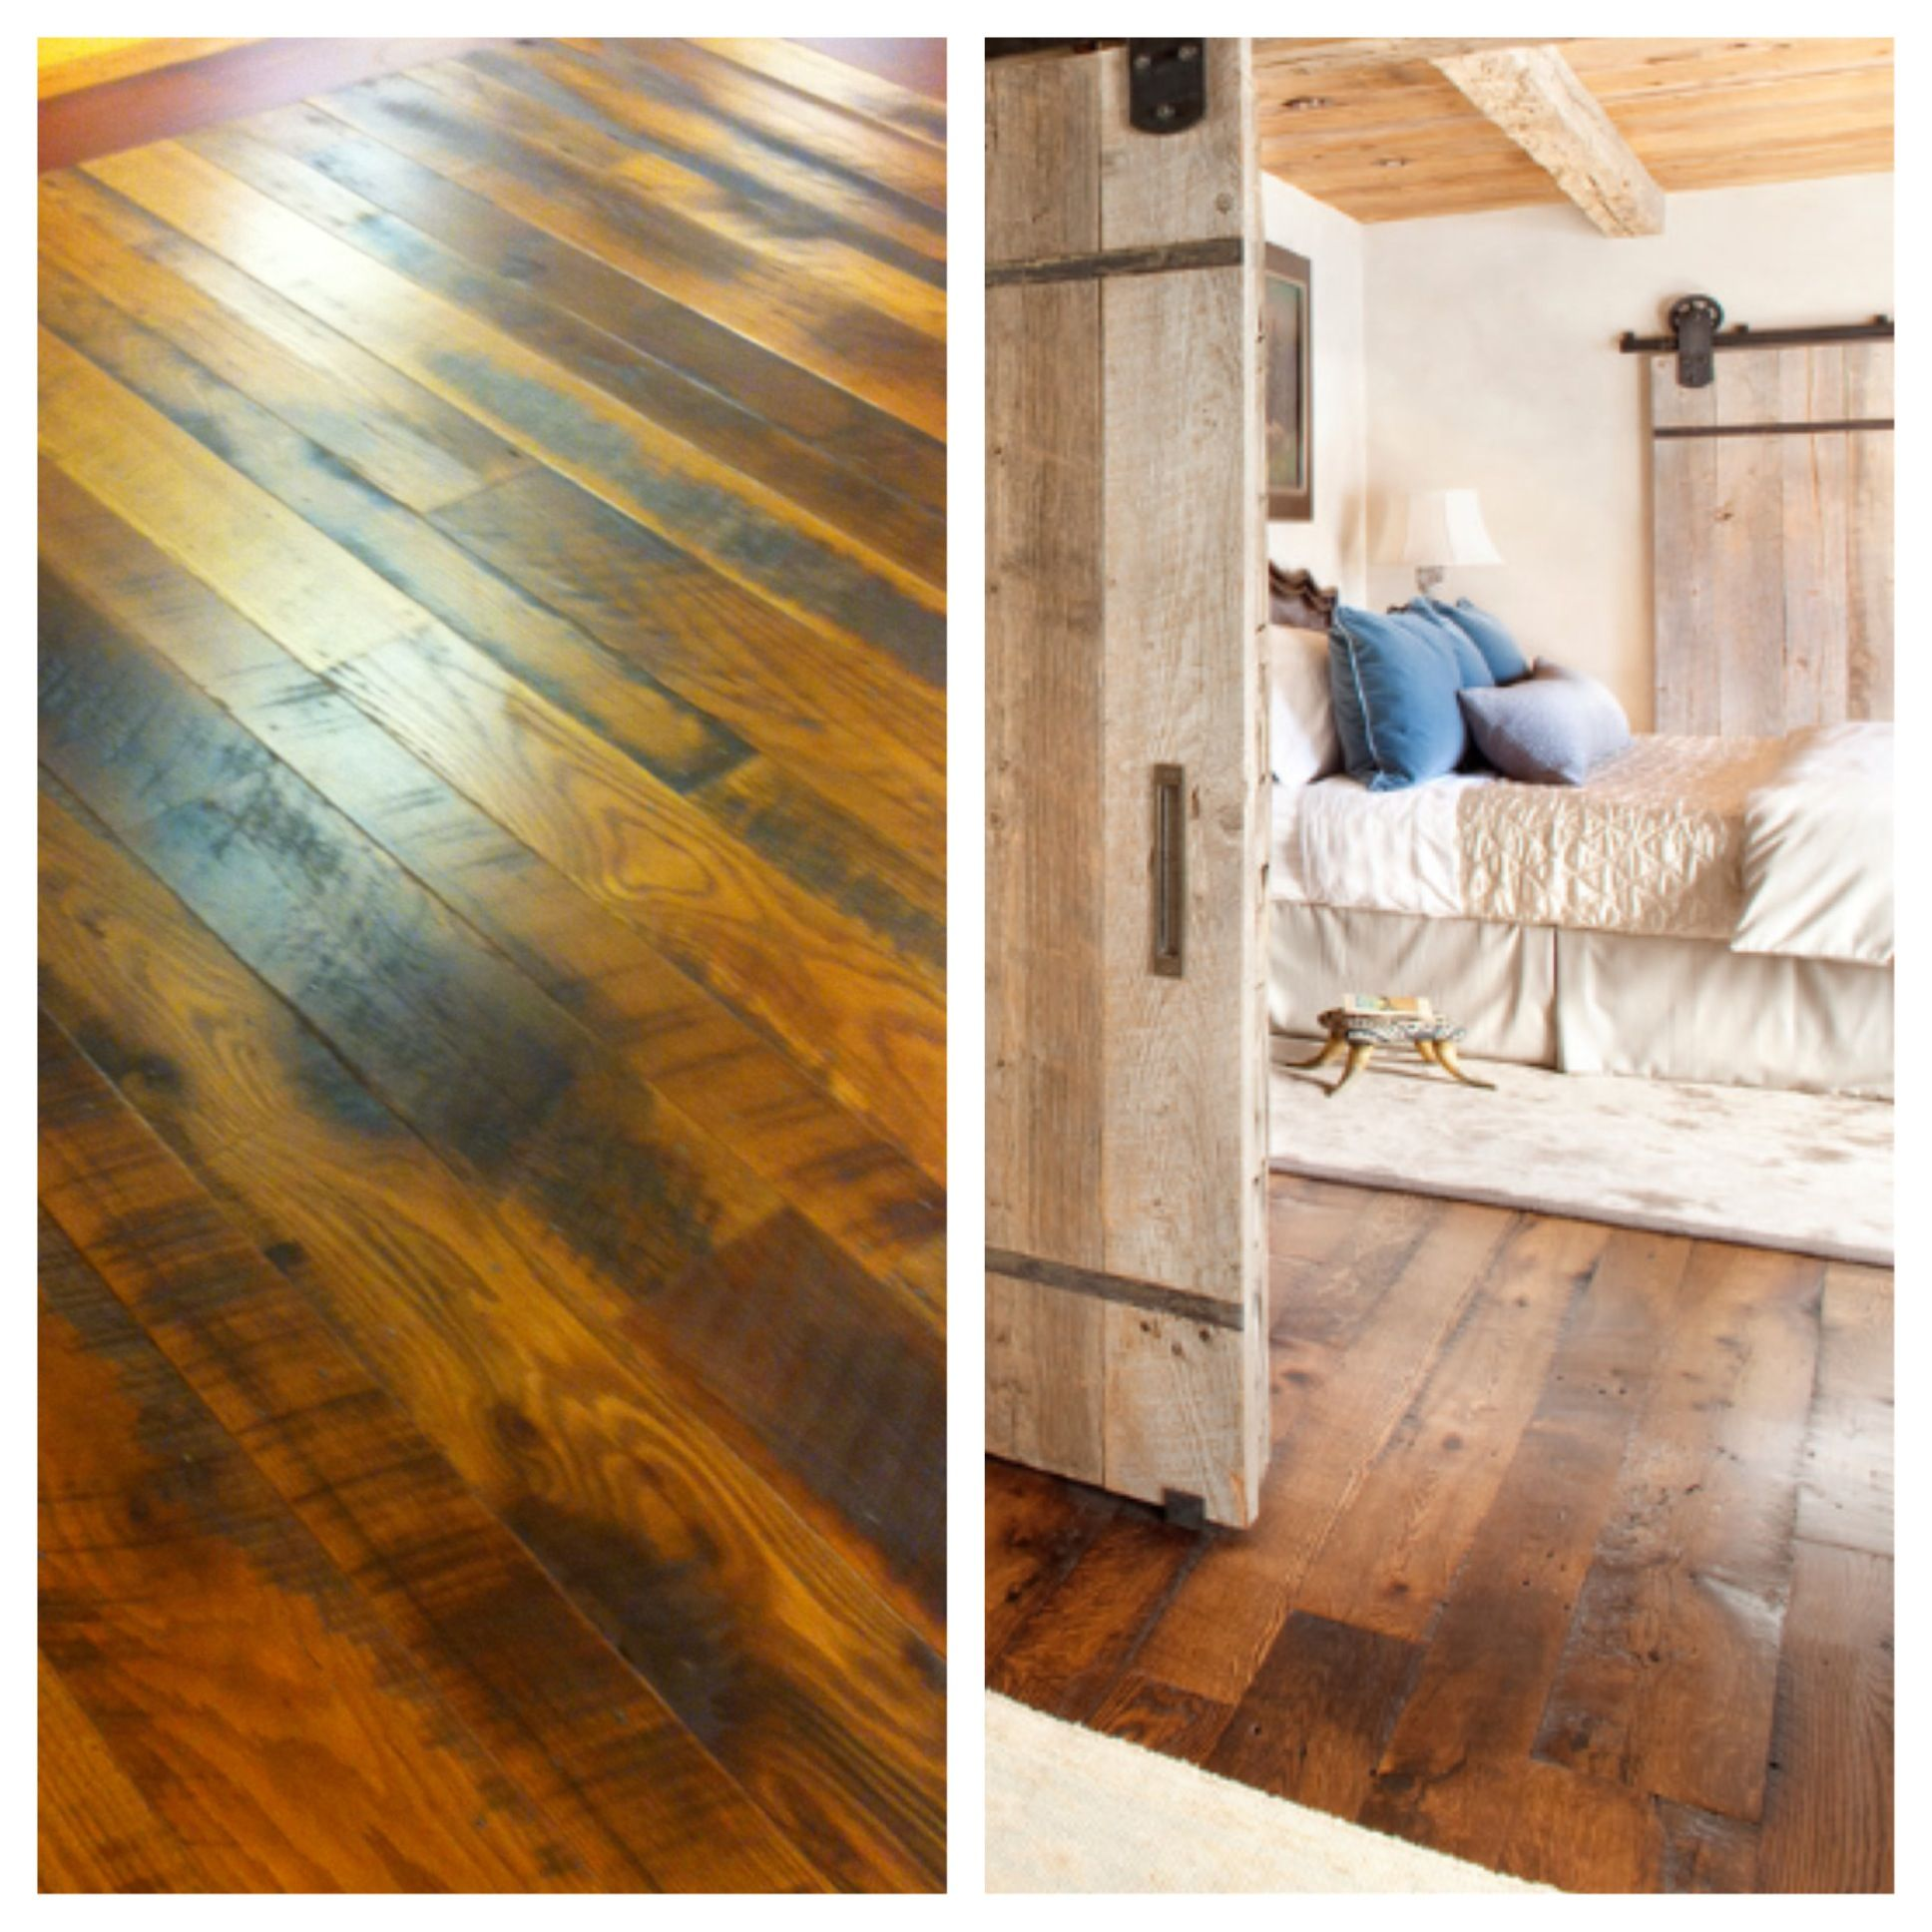 Reclaimed Barn Board Oak floors!!! Probably our most favorite part of the house ❤